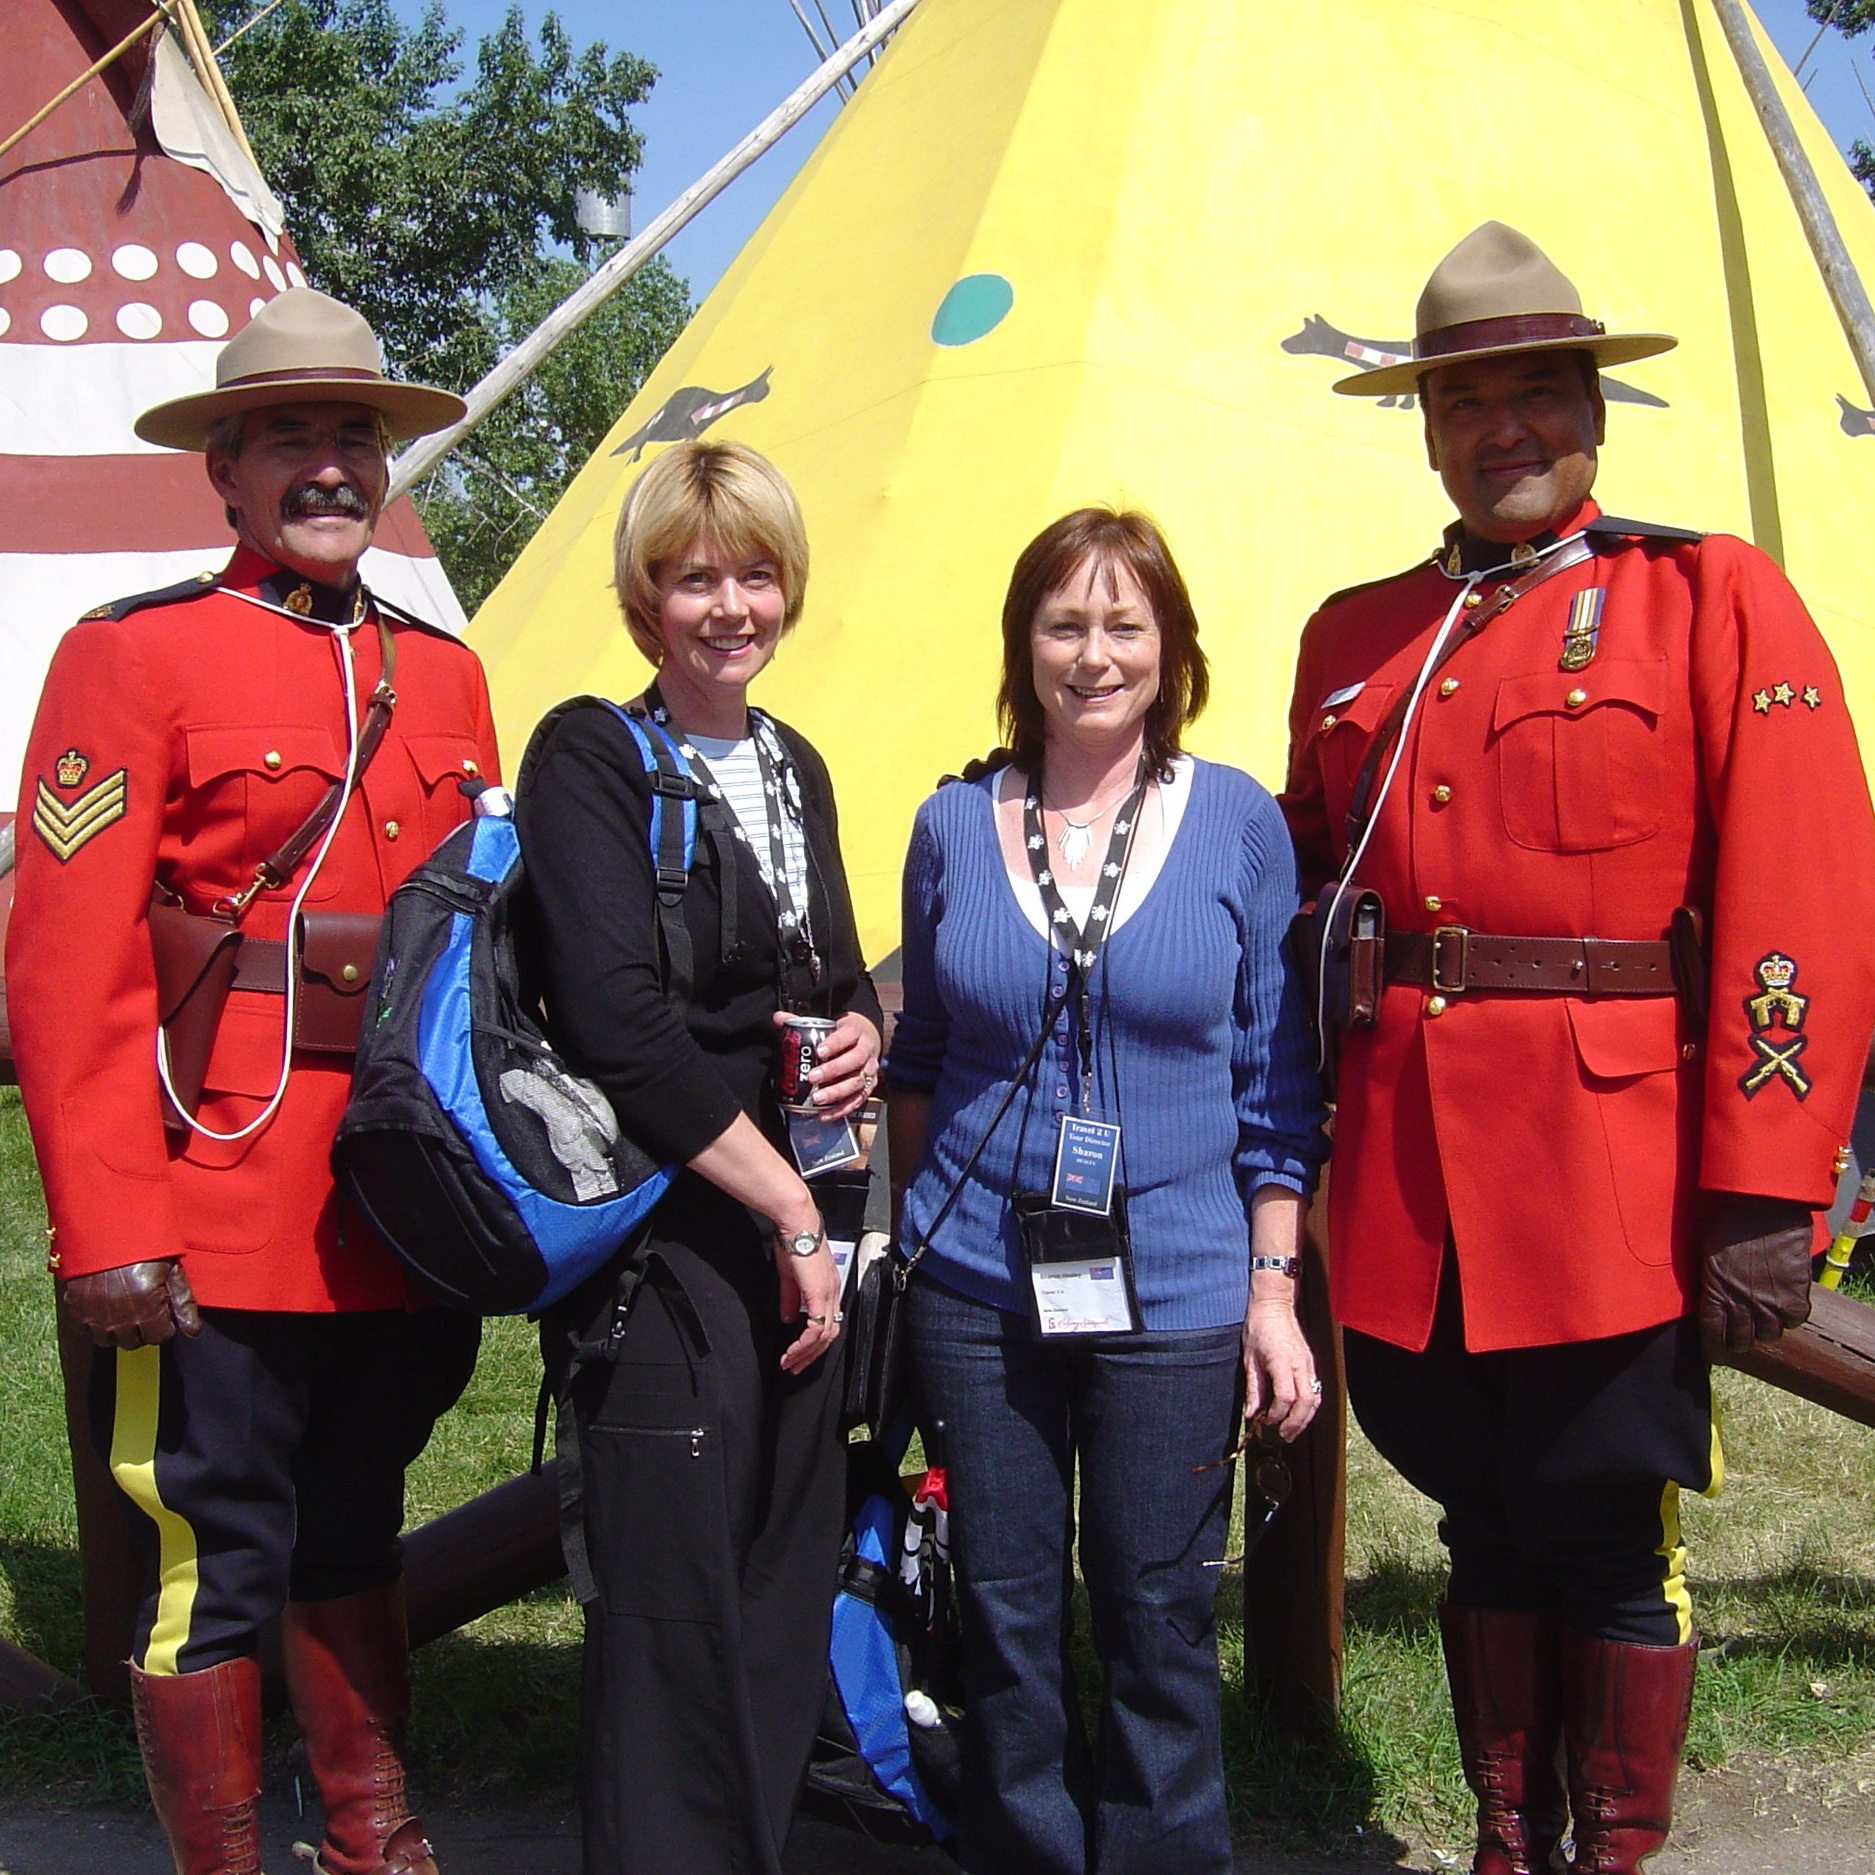 Marie+%26+Sharon+with+Mounties+at+the+Calgary+Stampede%2C+Canada.jpg